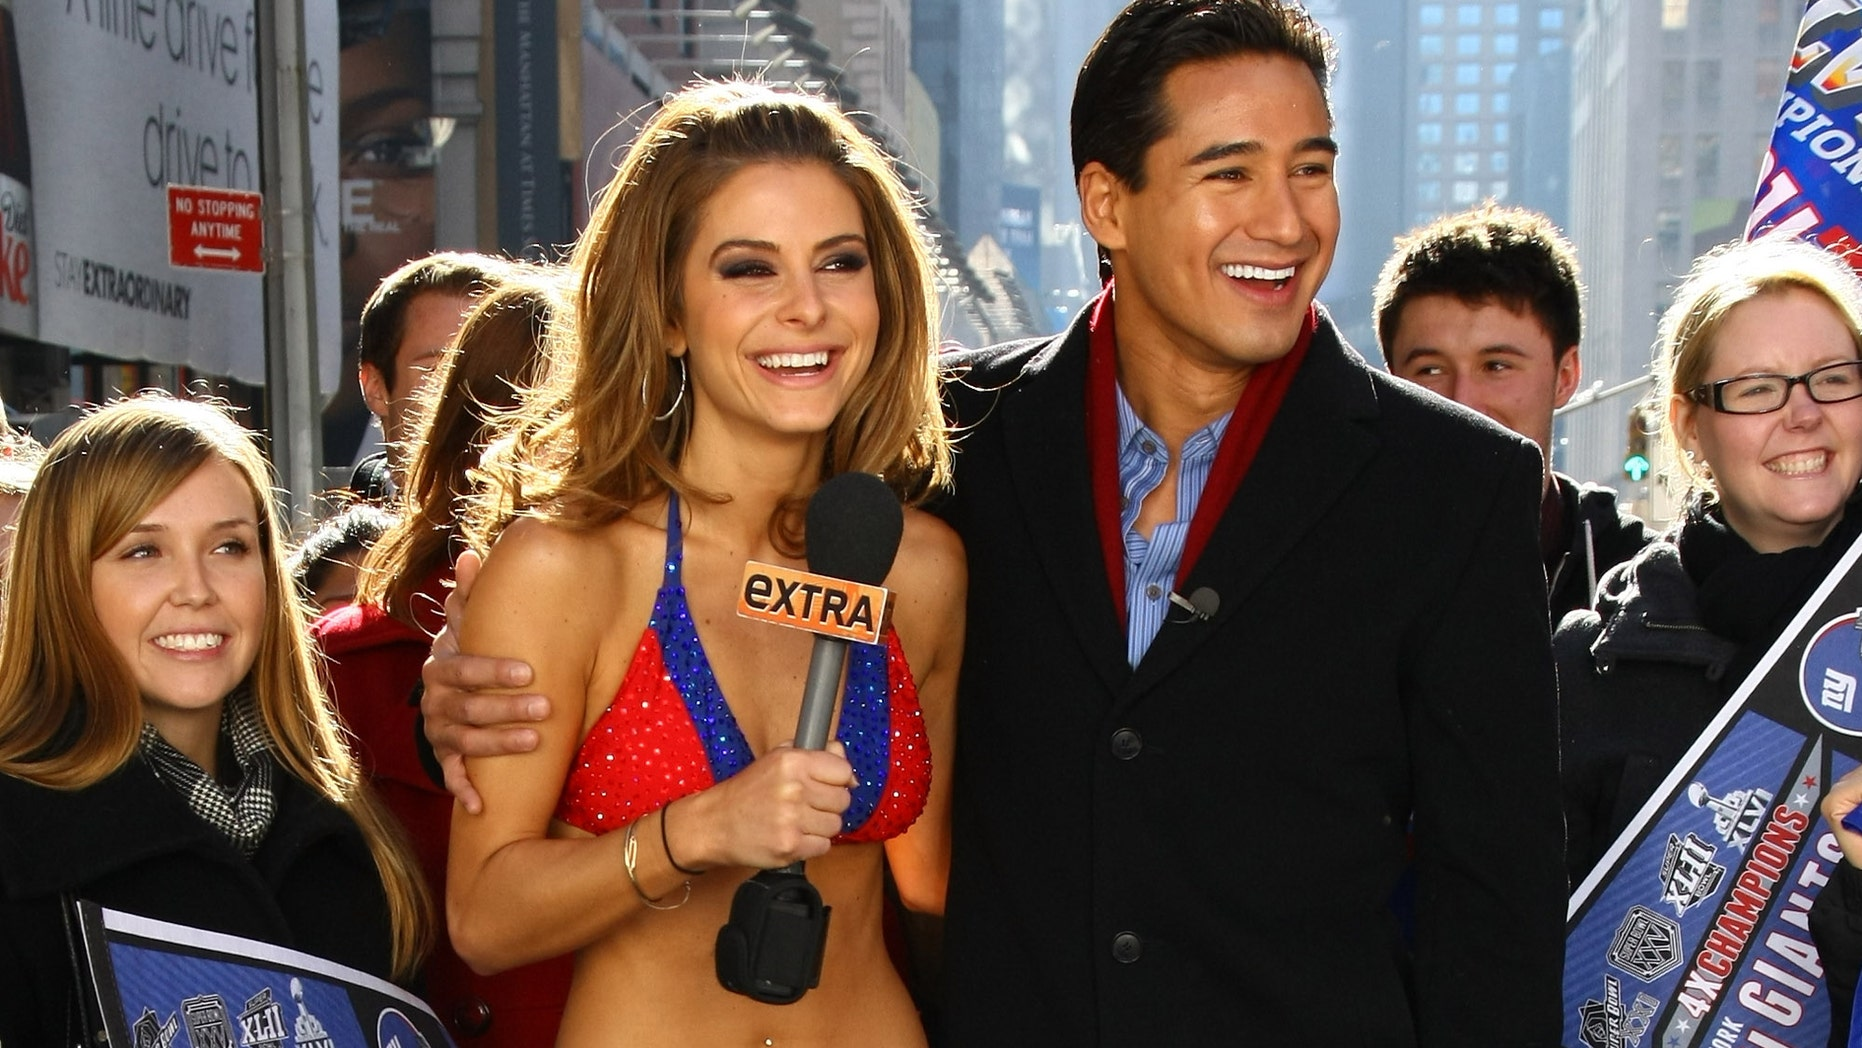 "NEW YORK, NY - FEBRUARY 06:  ""Extra"" hosts Mario Lopez (R) and Maria Menounos, an avid New England Patriots fan, makes good on her Super Bowl bet with her fellow show correspondent, Giants fan AJ Calloway and bares all in a New York Giants Bikini in Times Square on February 6, 2012 in New York City.  (Photo by Neilson Barnard/Getty Images)"